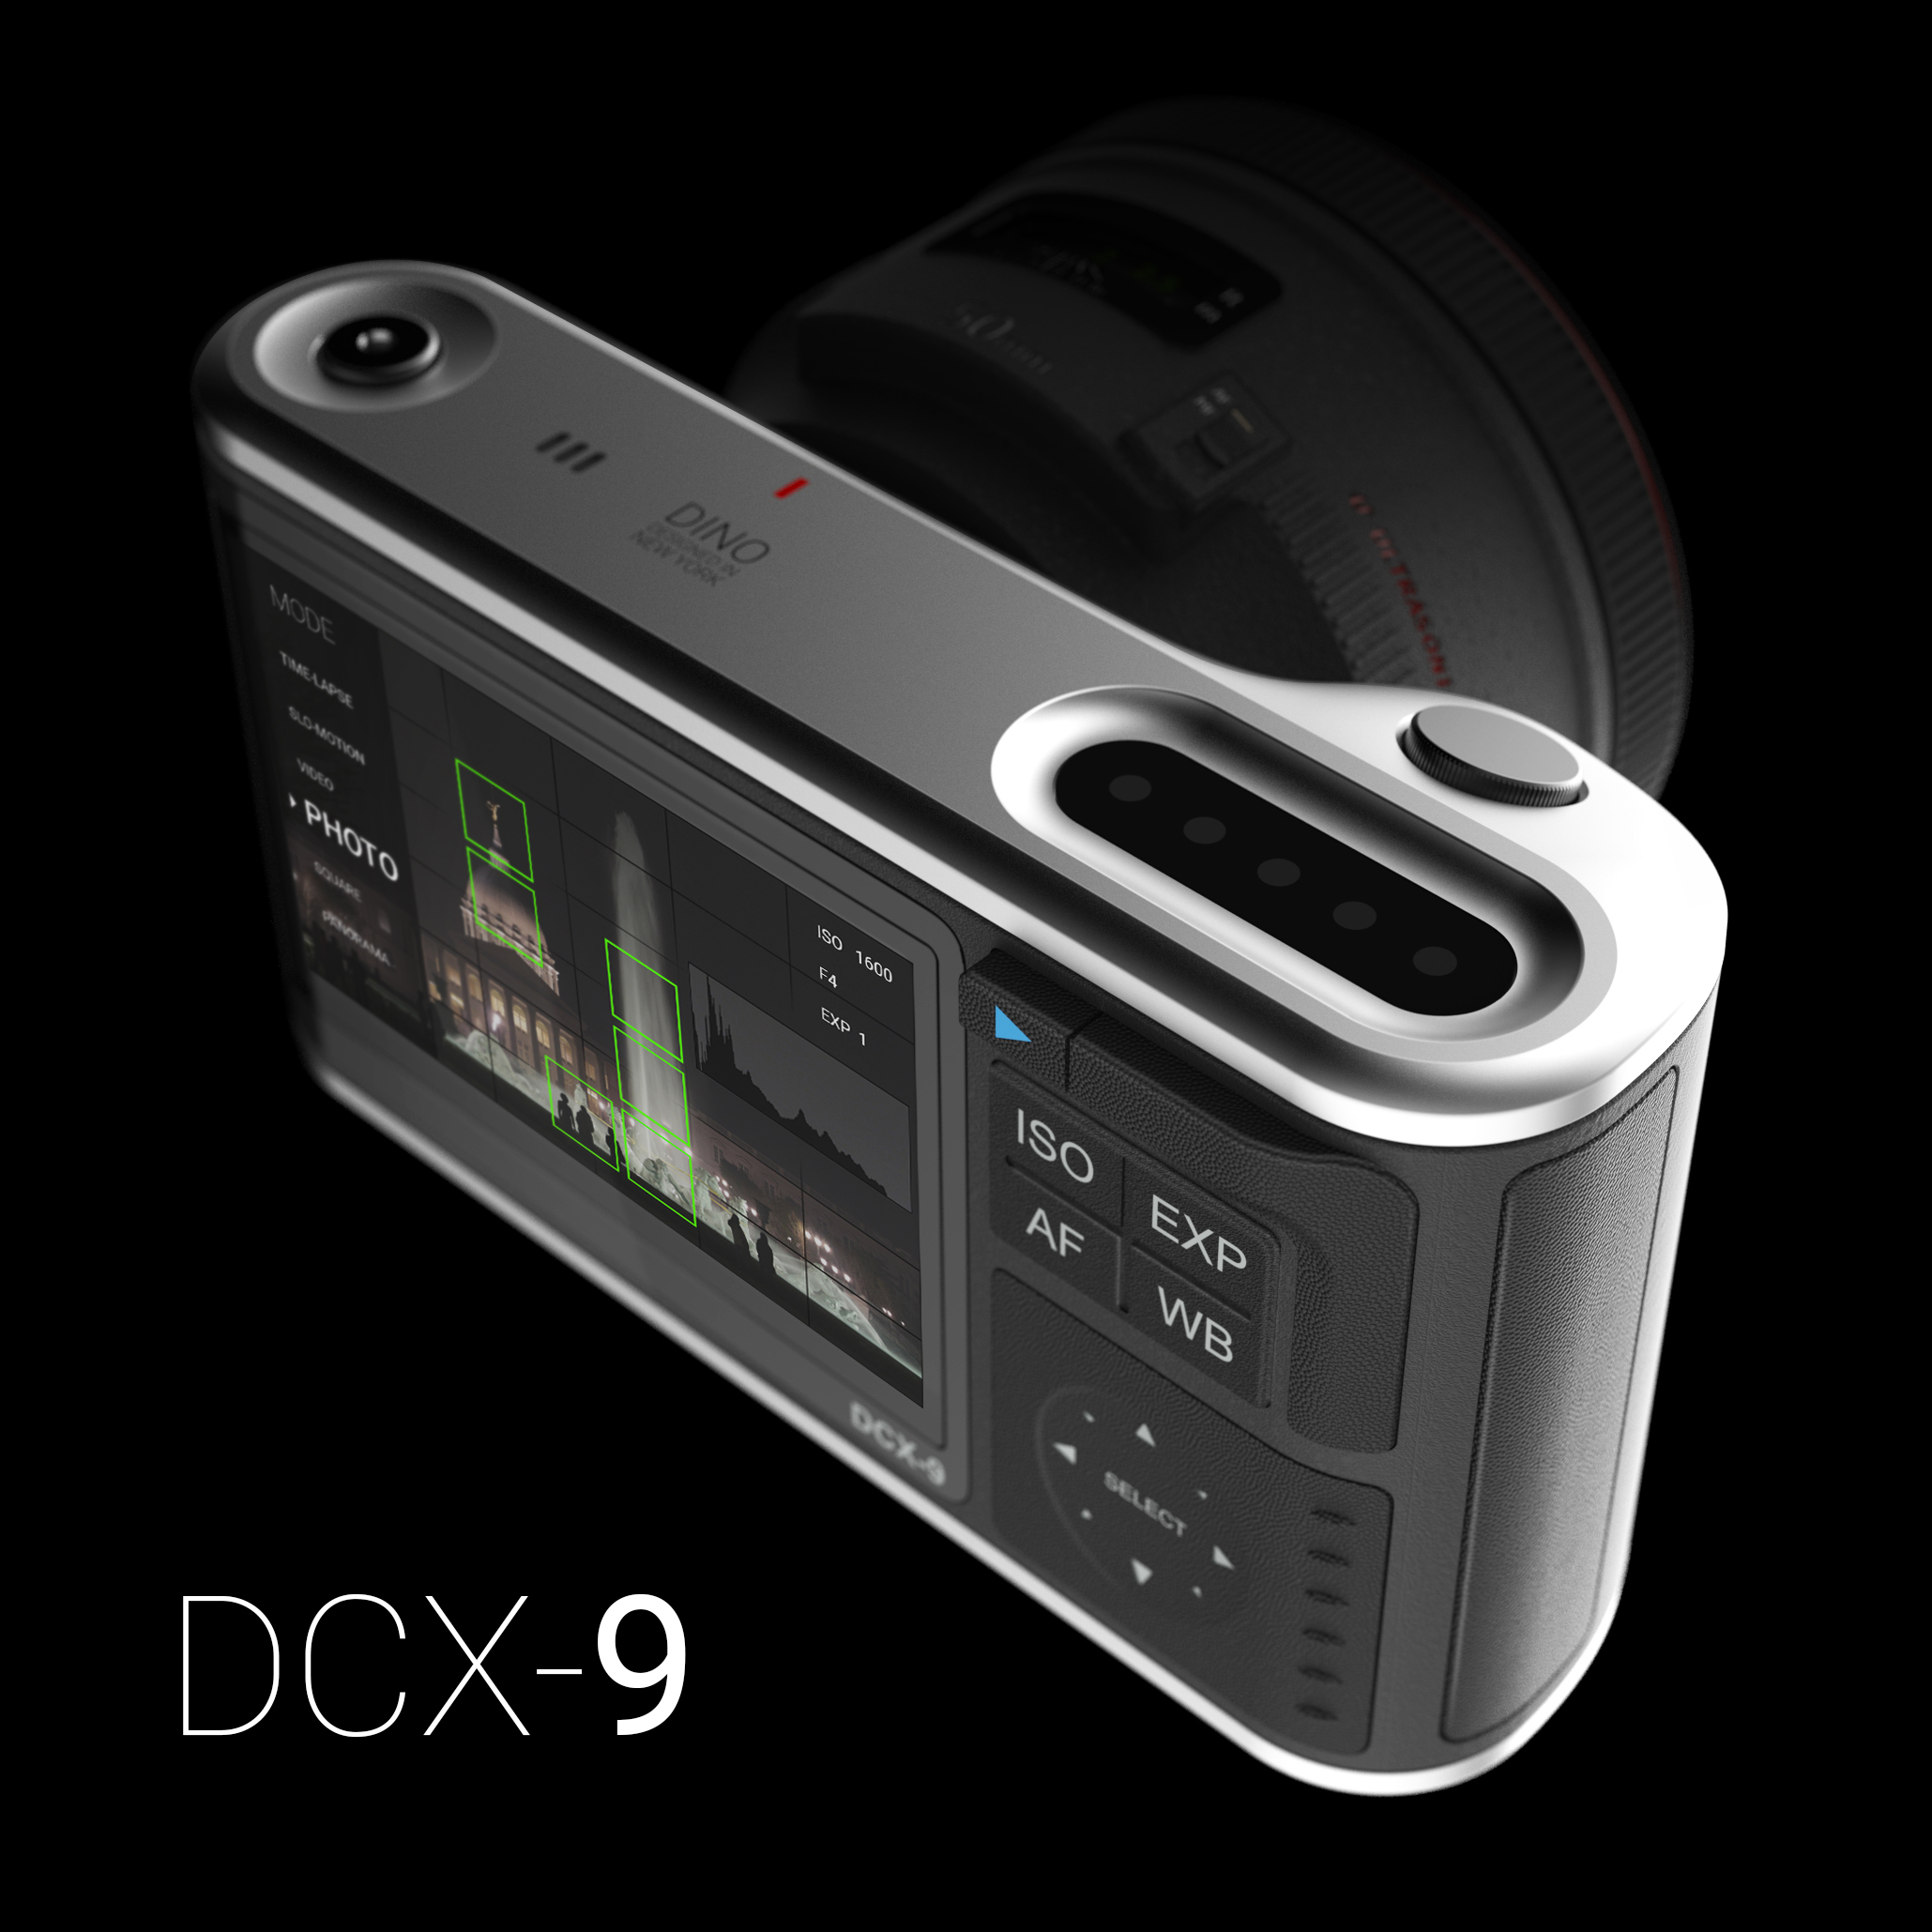 This is the DCX-9 camera concept. It's a side project to experiment with designing a different camera experience by way of removing knobs and opting for touch based input.